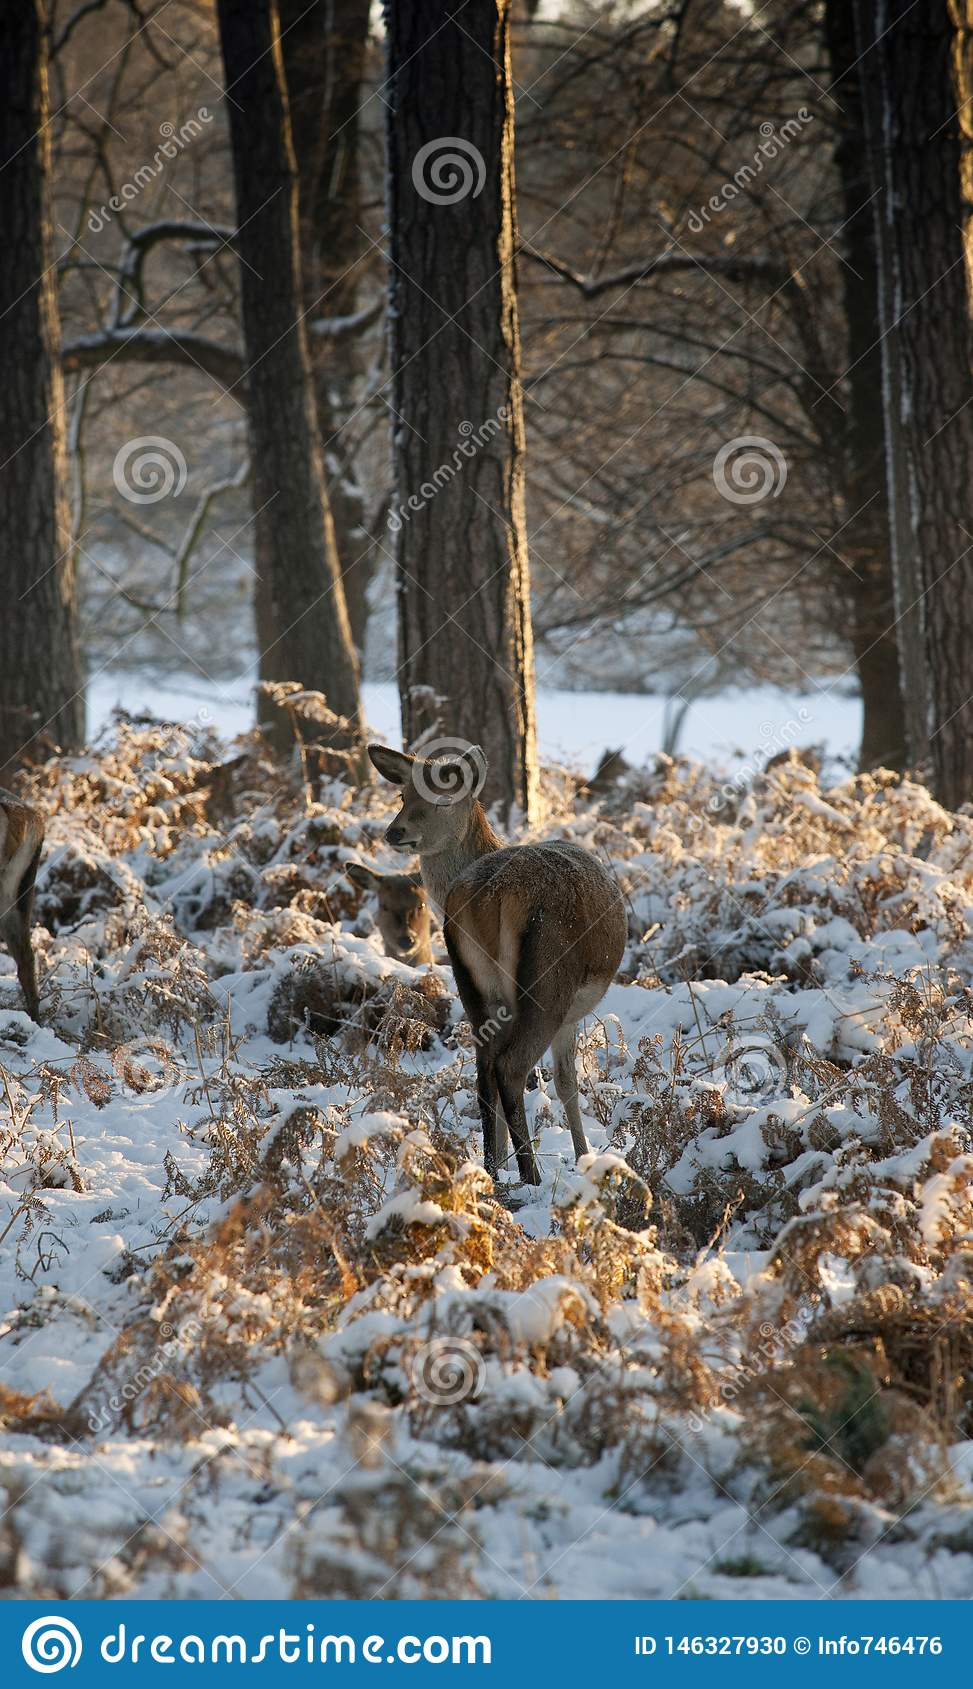 A view of deer in the grounds of the Elizabethan Wollaton Hall museum and gardens in the snow in winter in Nottingham,